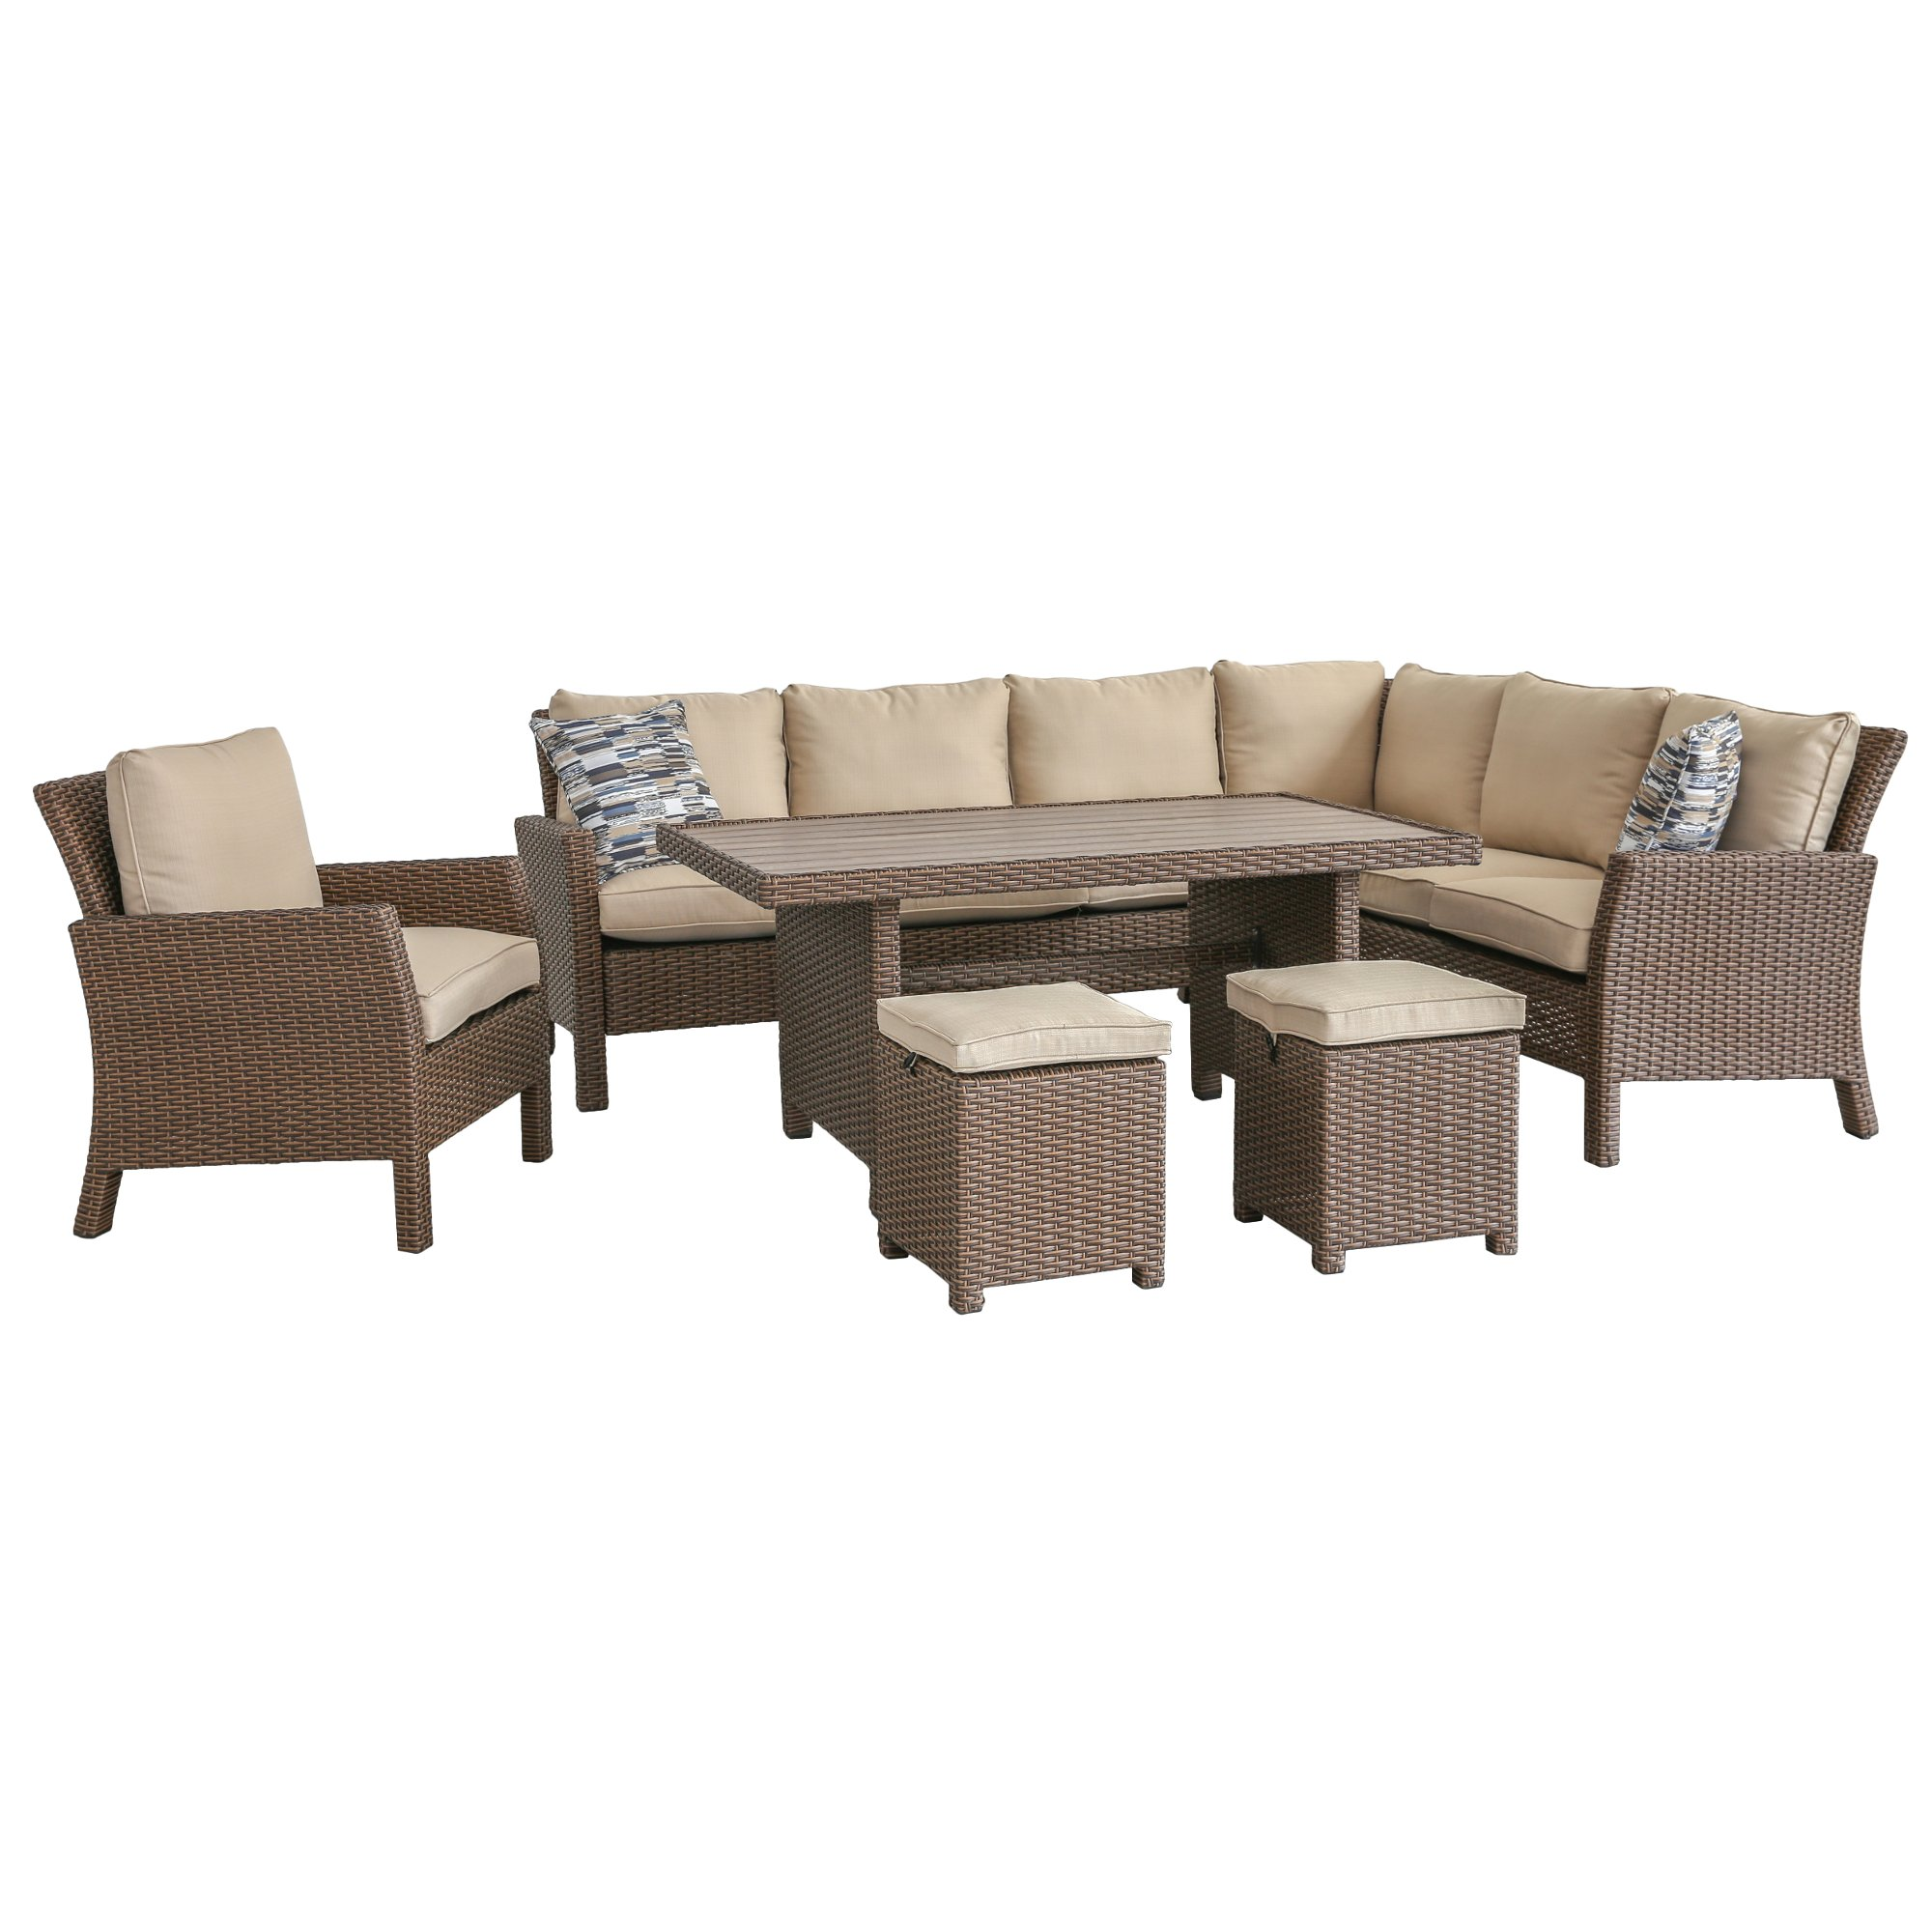 4 Piece Outdoor Patio Furniture Set Arcadia Rc Willey Furniture Store